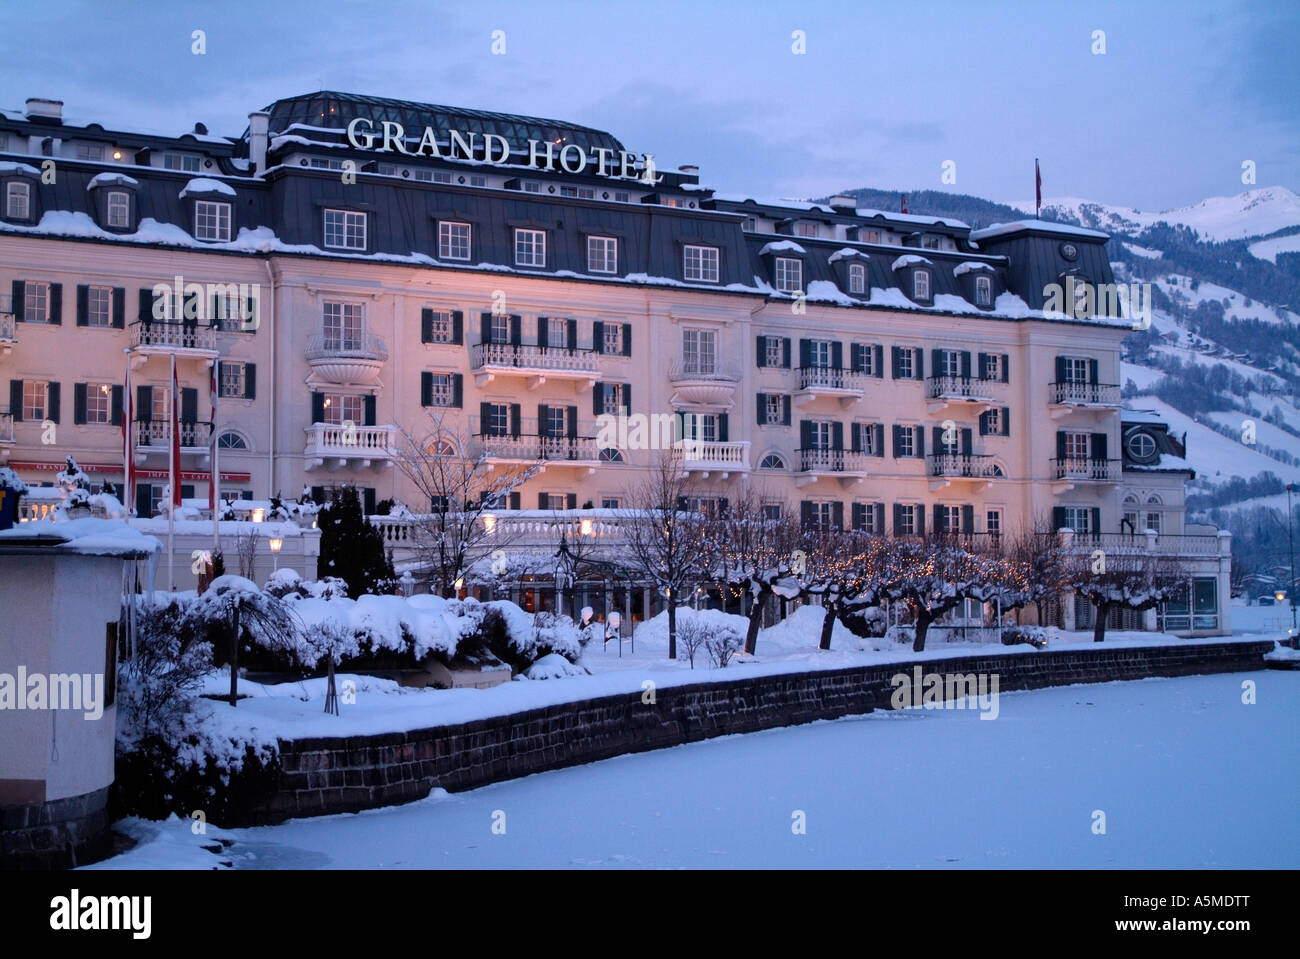 Grand hotel zell am see austria stock photo royalty free for Designhotel zell am see